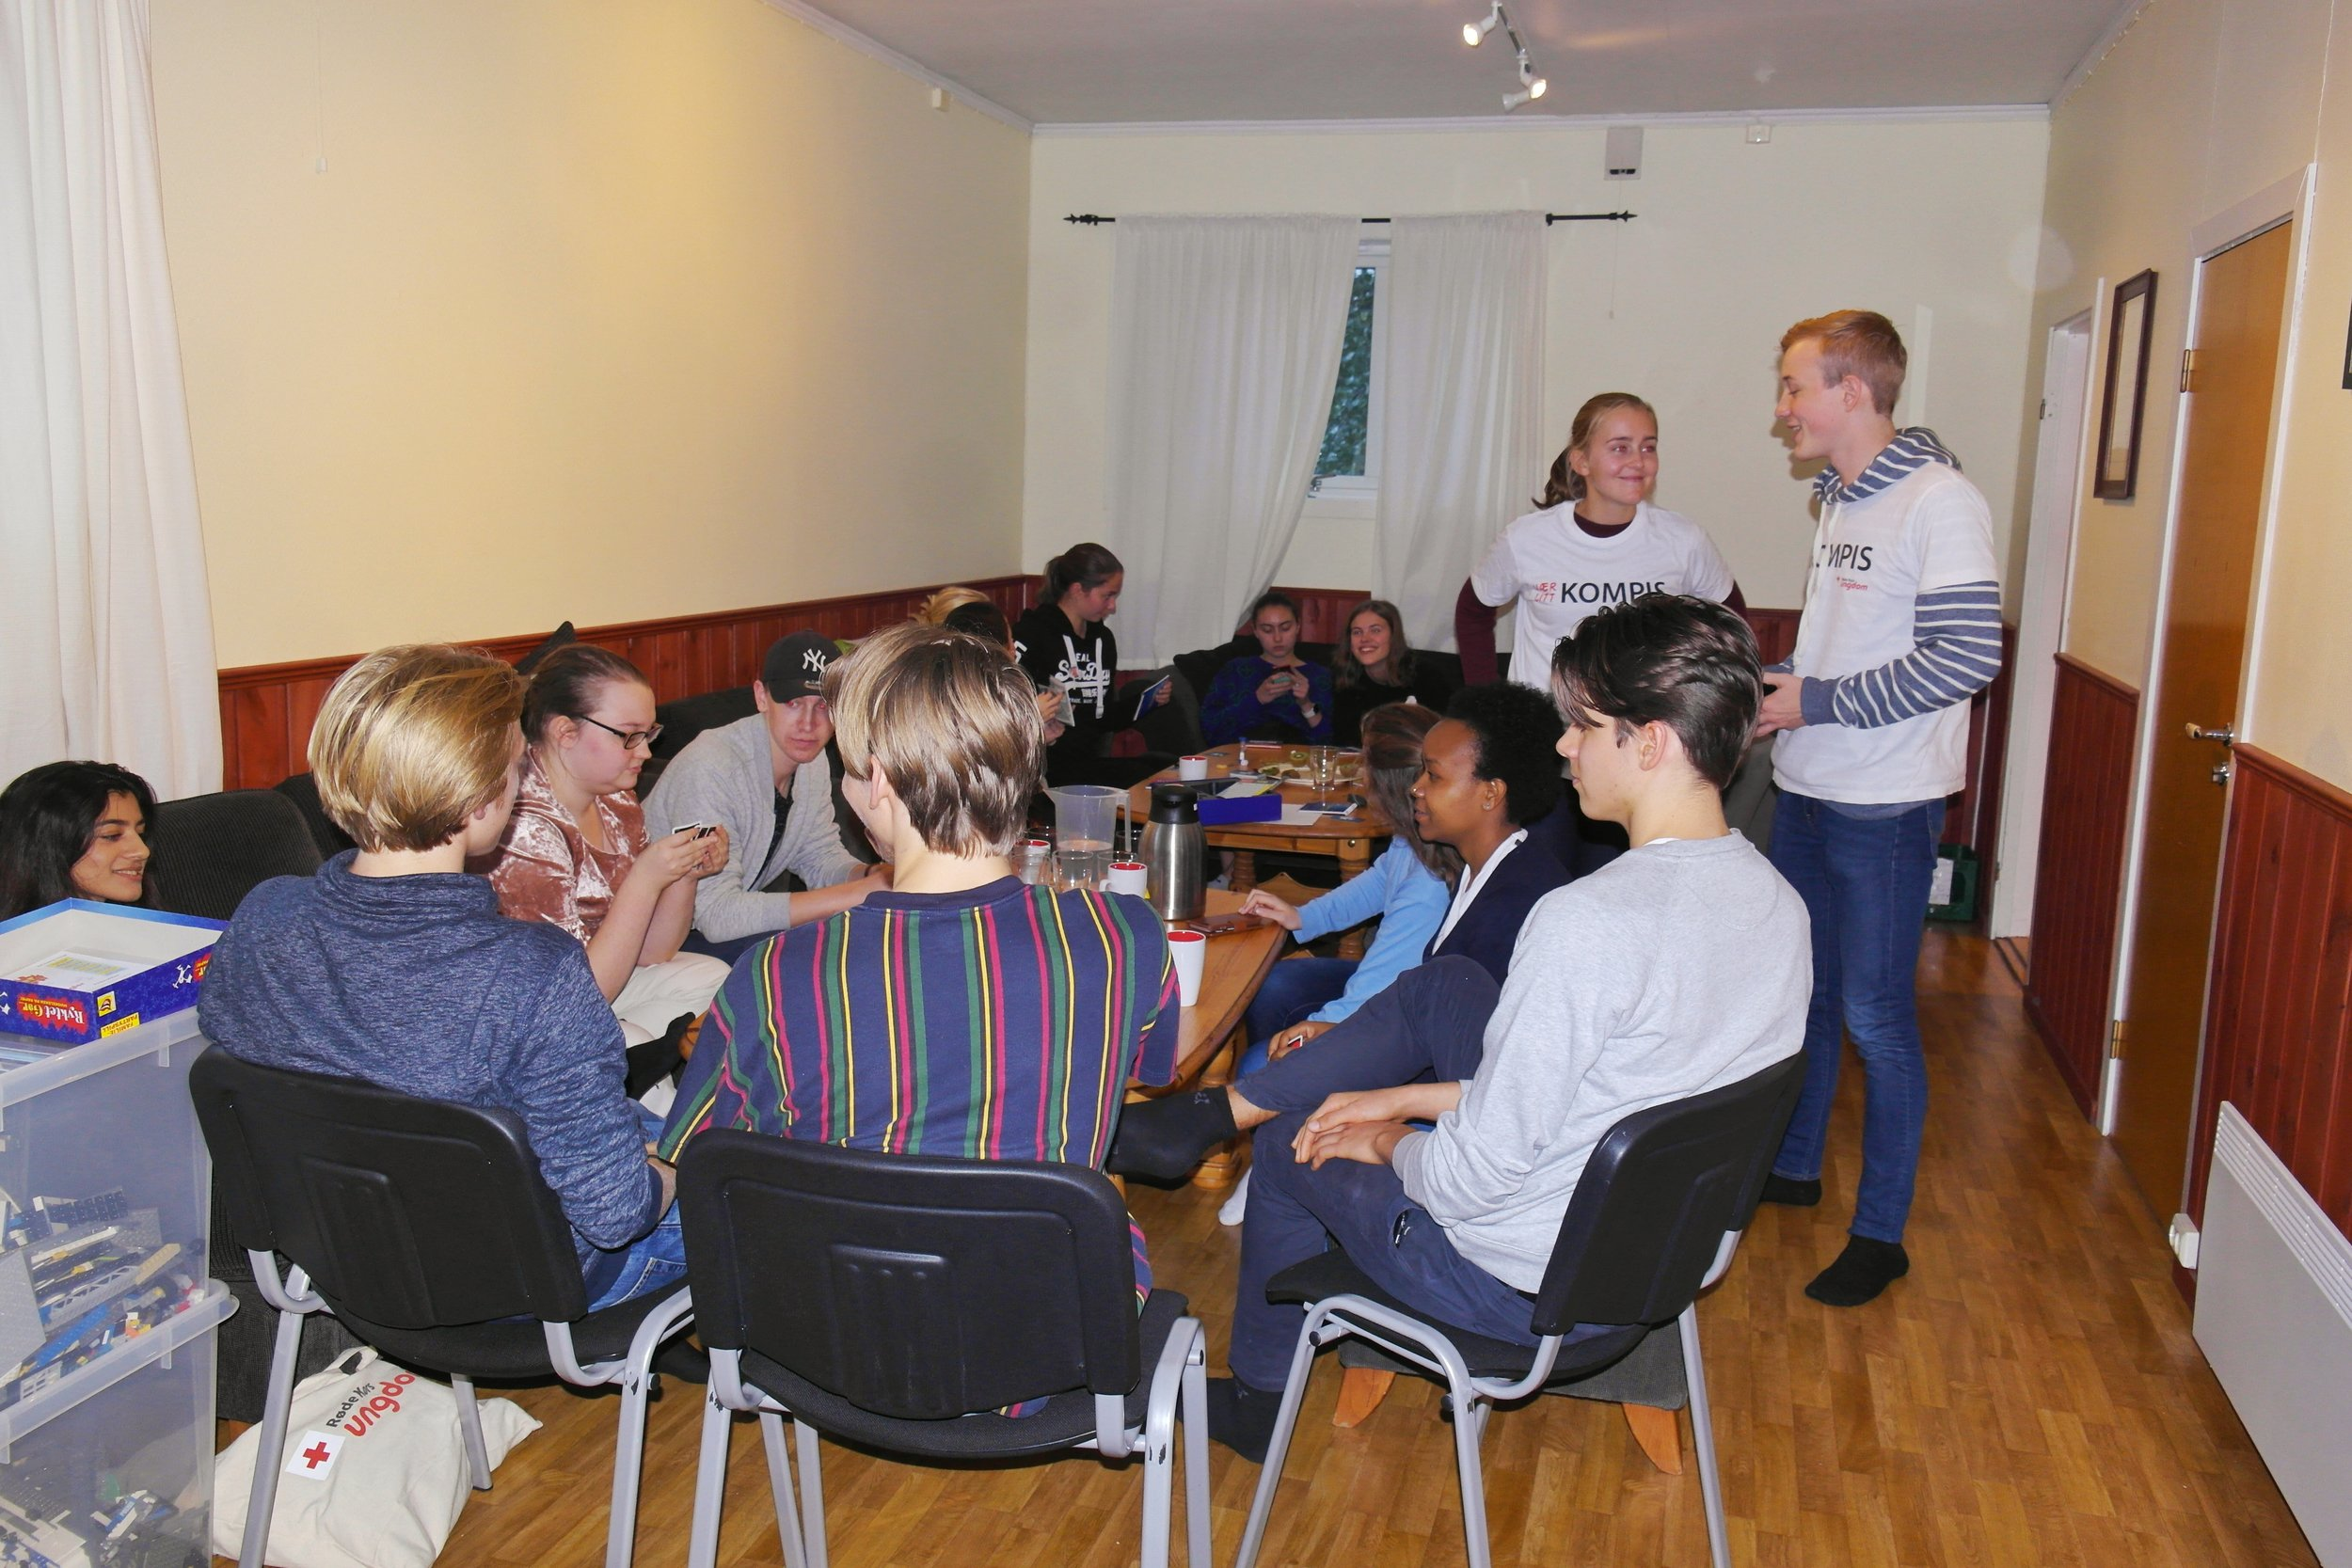 Vestby og Ås Red Cross youth volunteers during a KOMPIS (buddy) activity.